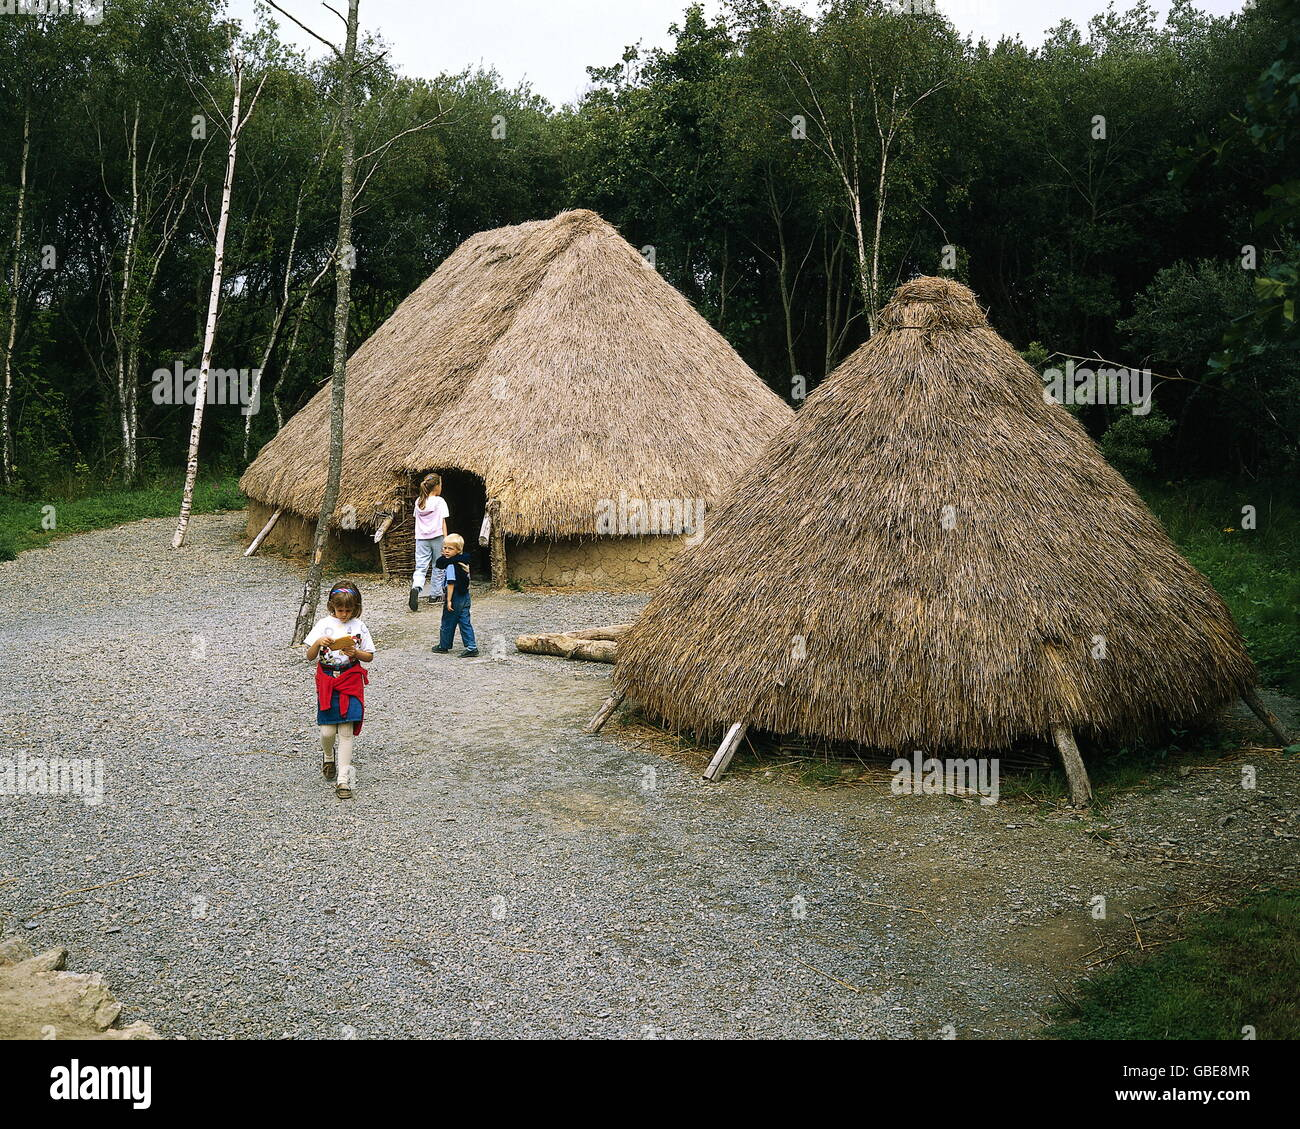 Prehistory Architecture Neolithic Farm Circa 7000 BC Ireland Wexford National Heritage Park